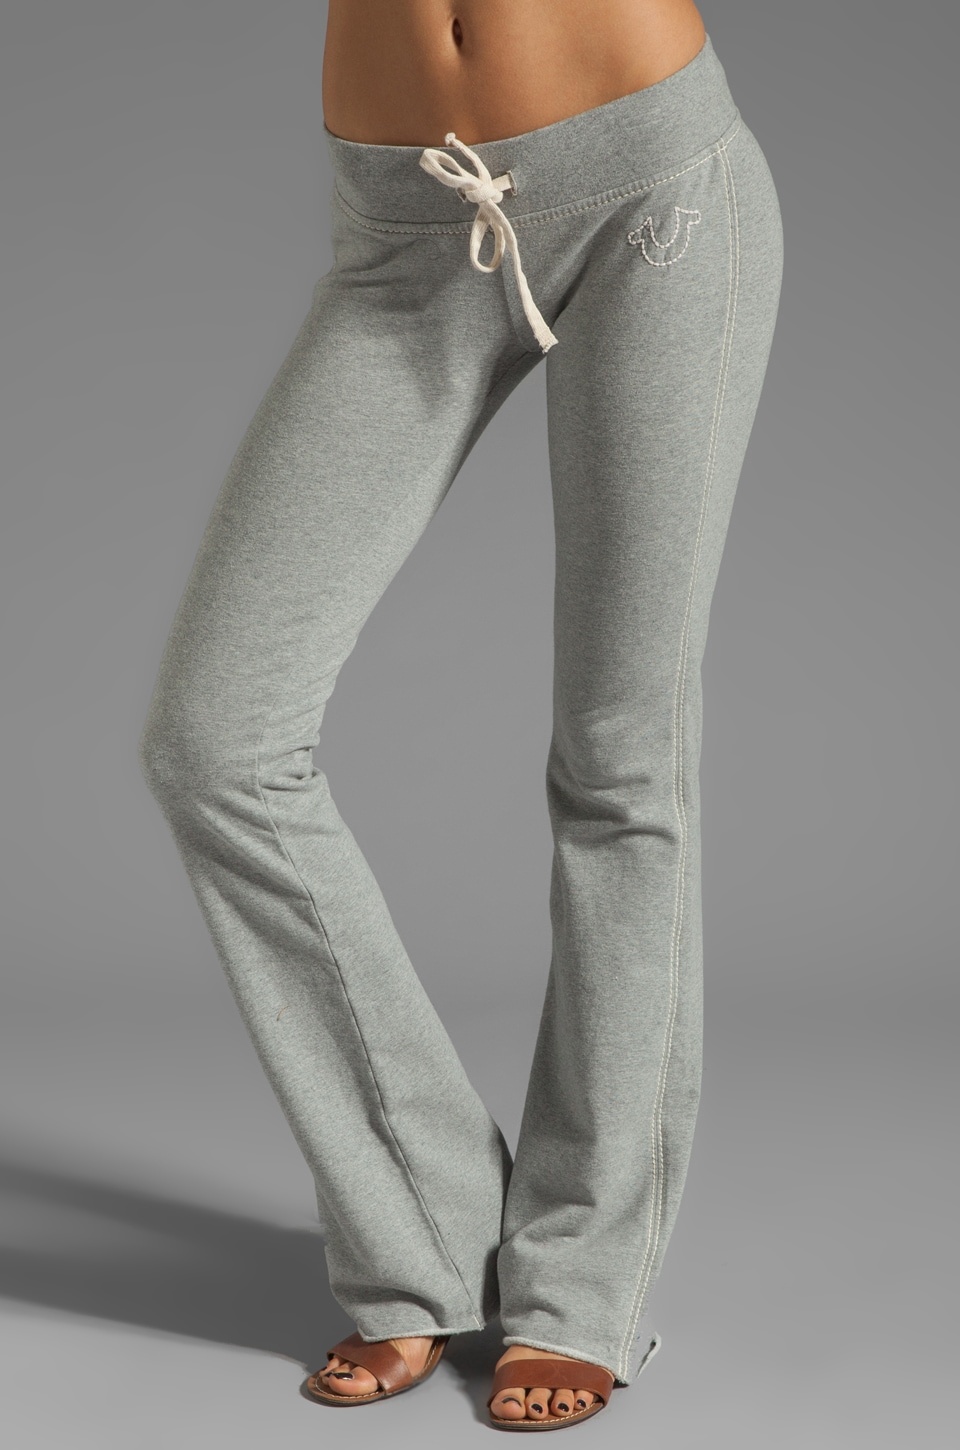 True Religion Marissa Pant in Heather Grey